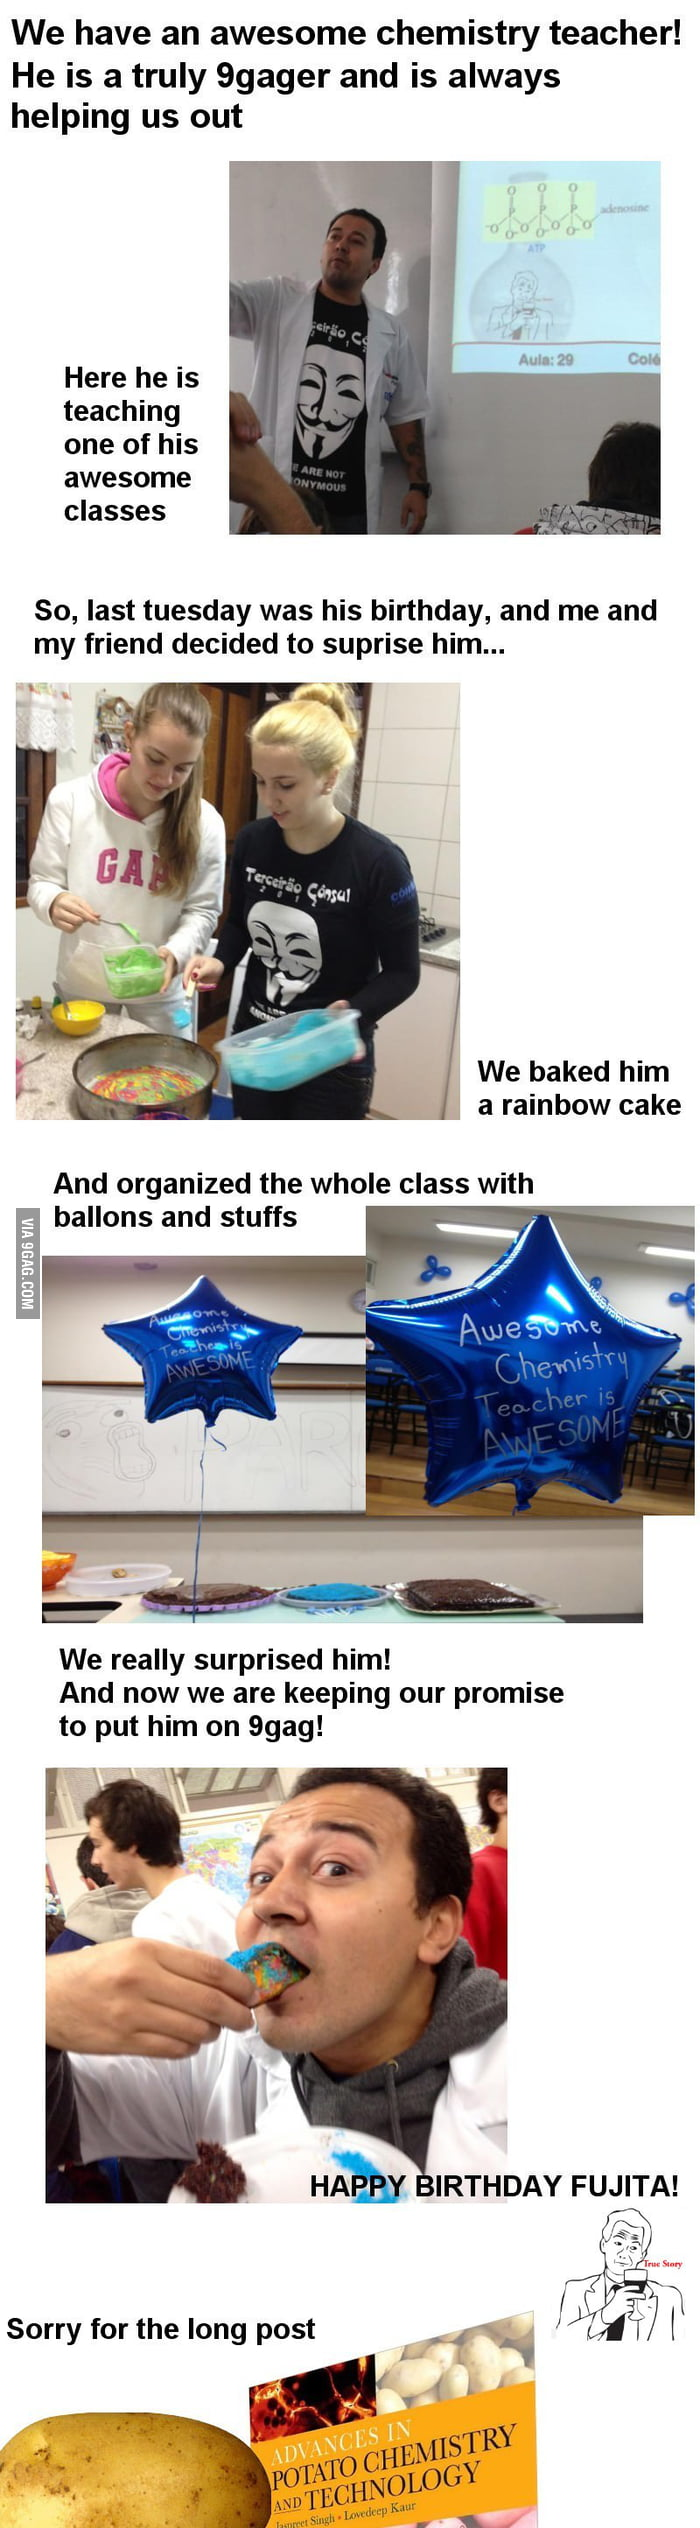 Awesome Chemistry Teacher is AWESOME!